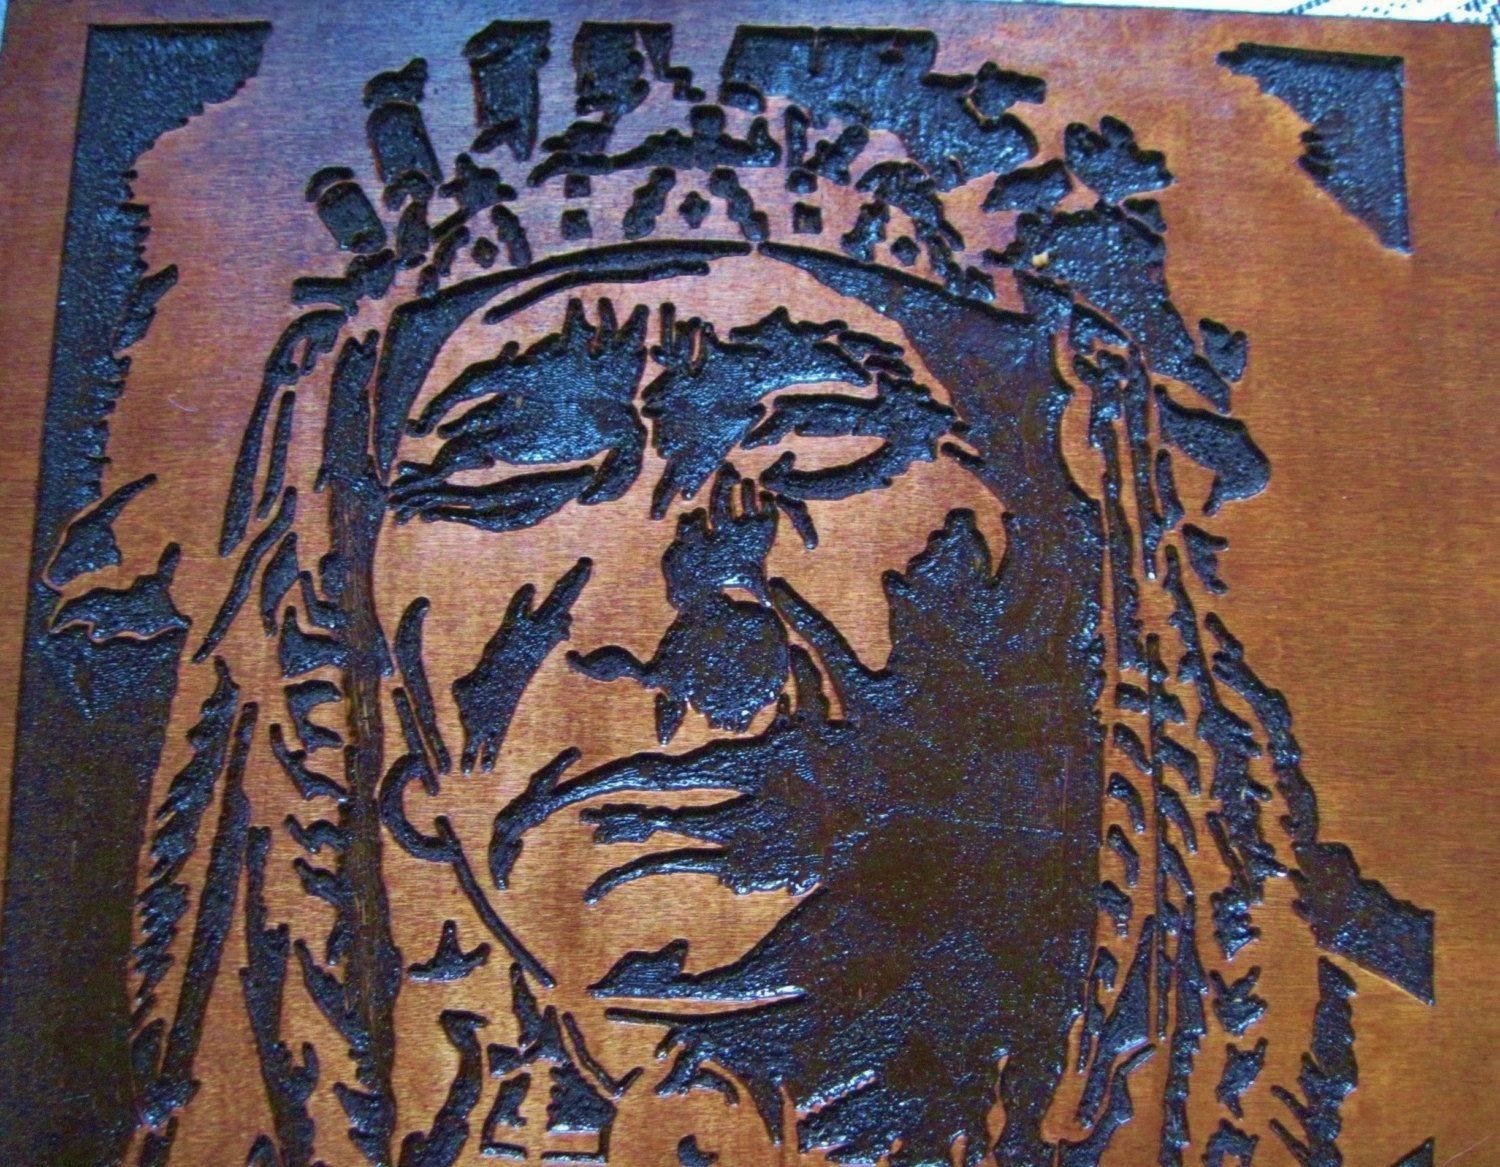 Custom Made Native American Indian Chief Handmade Wood Carving Regarding Most Current Native American Wall Art (View 4 of 25)